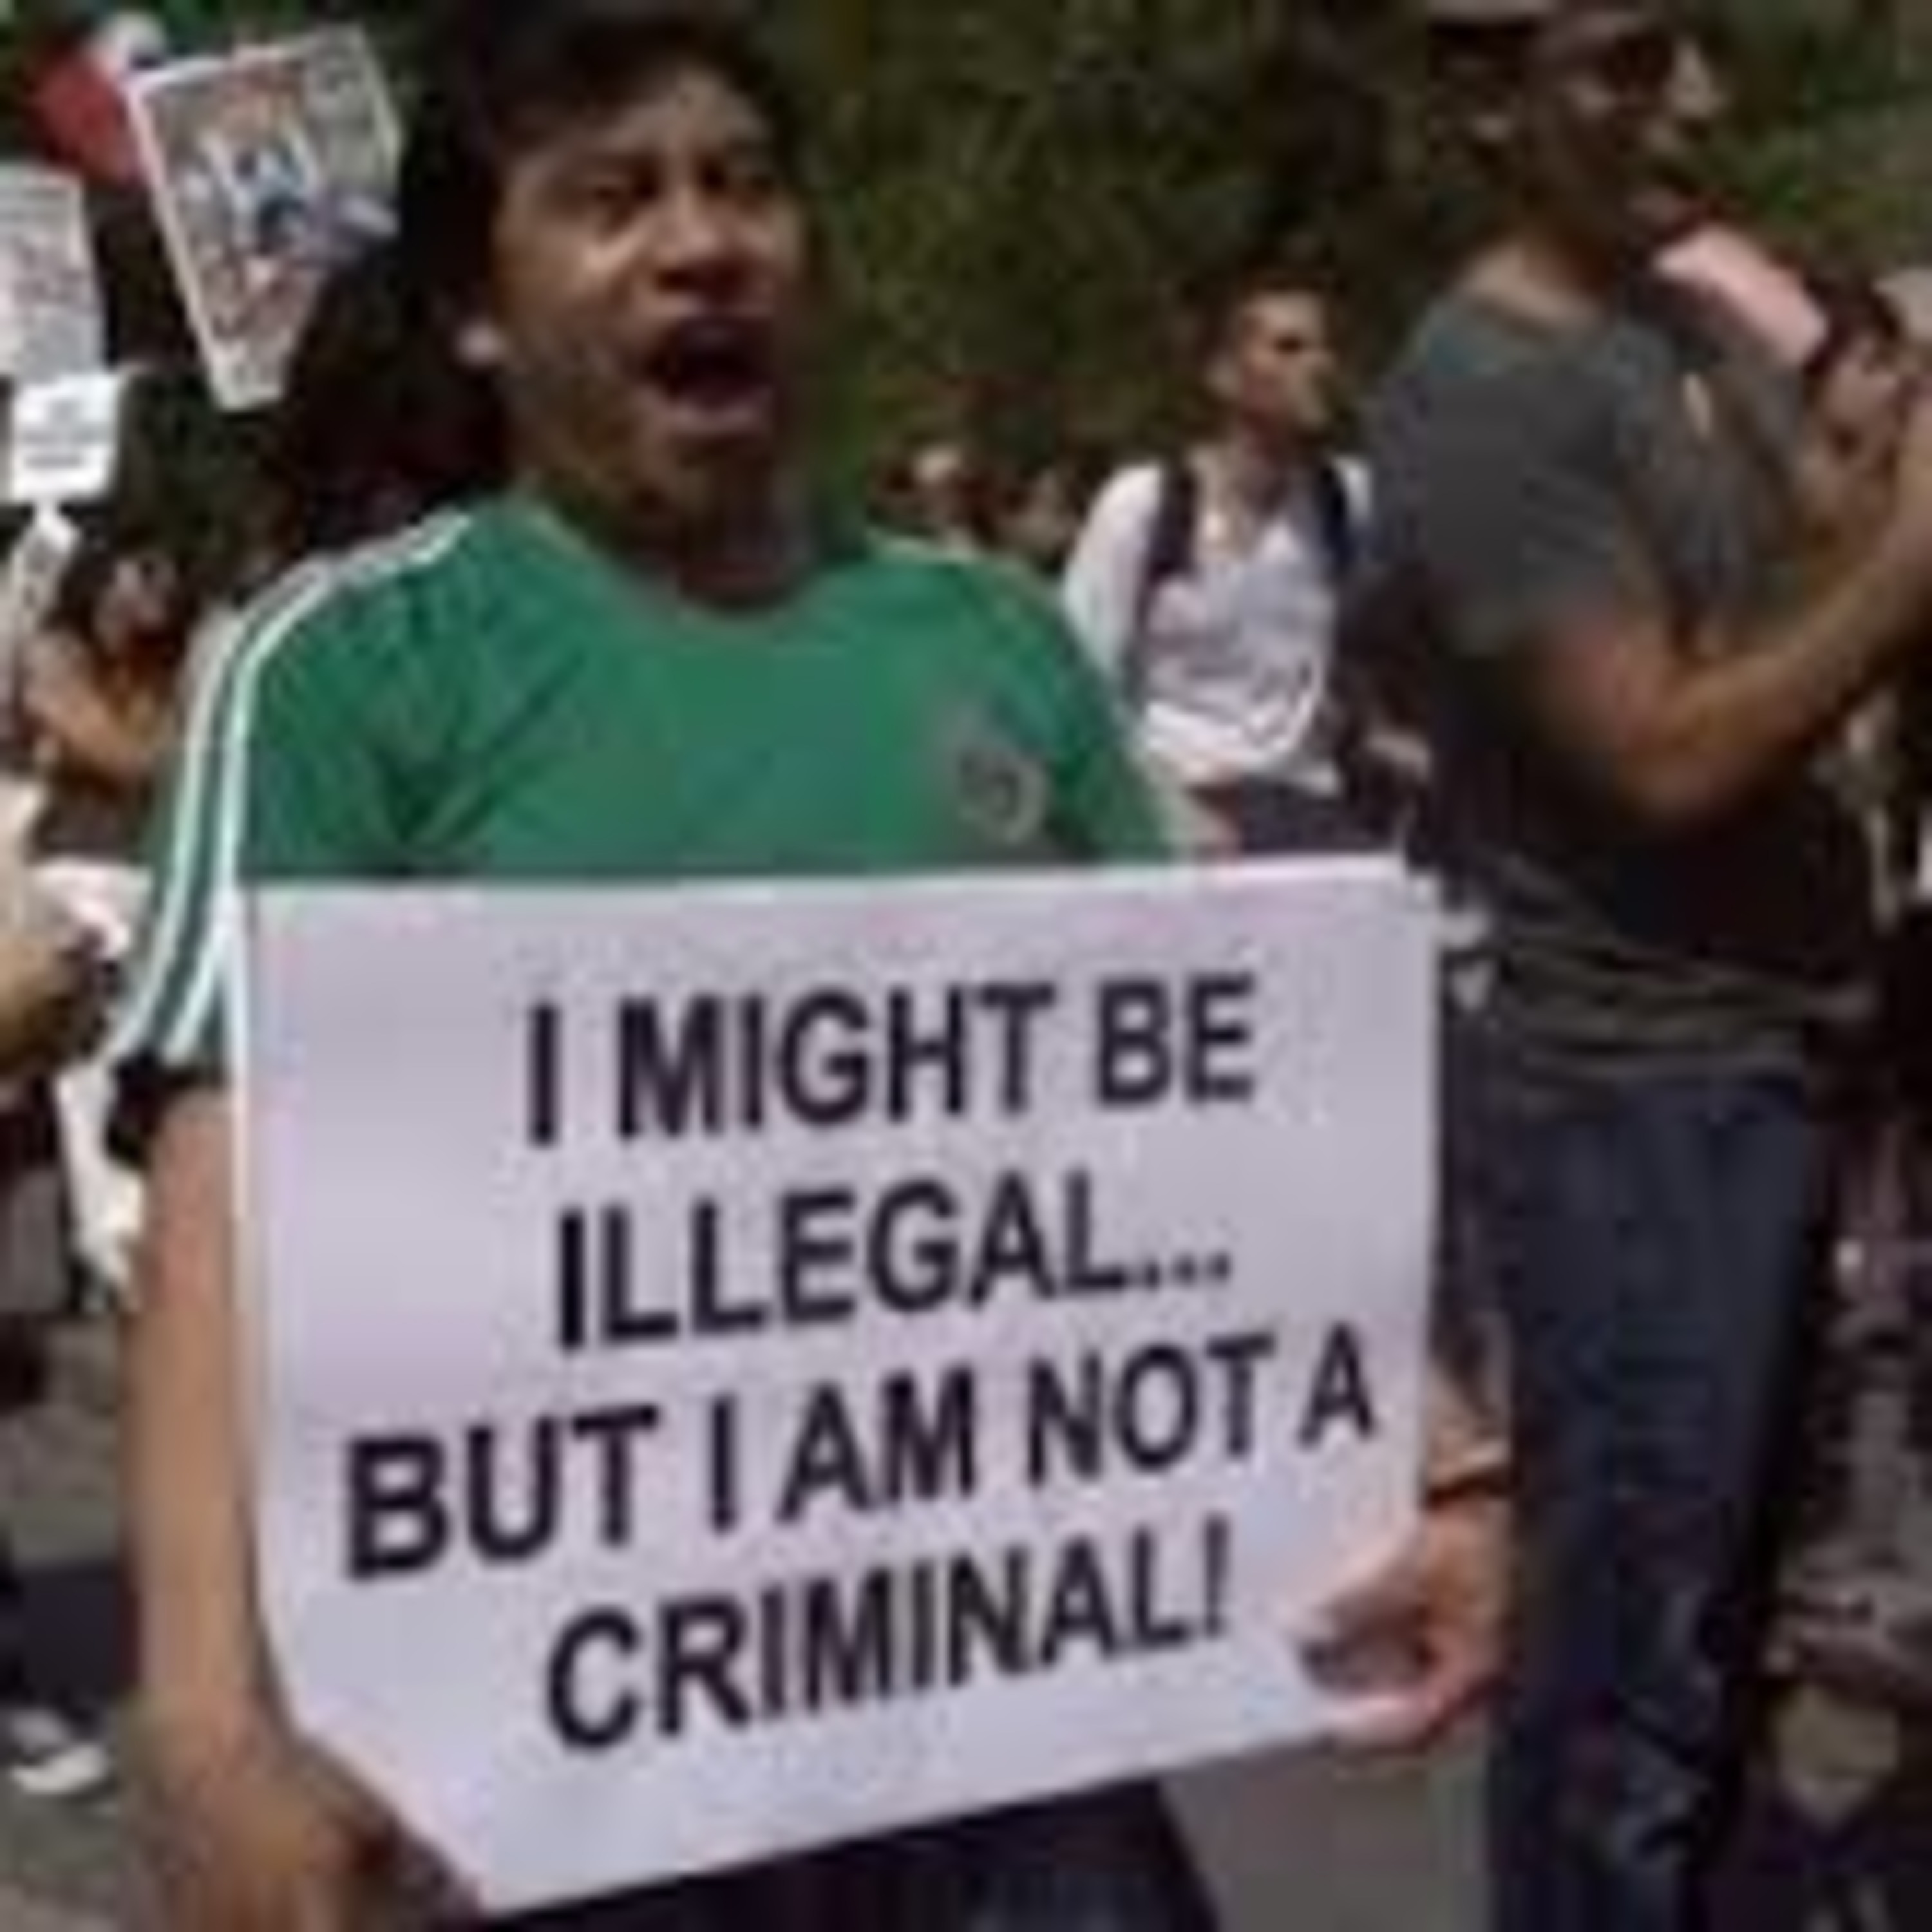 Episode 171 huddled masses or merely illegals? Pros & cons of illegal immigration!